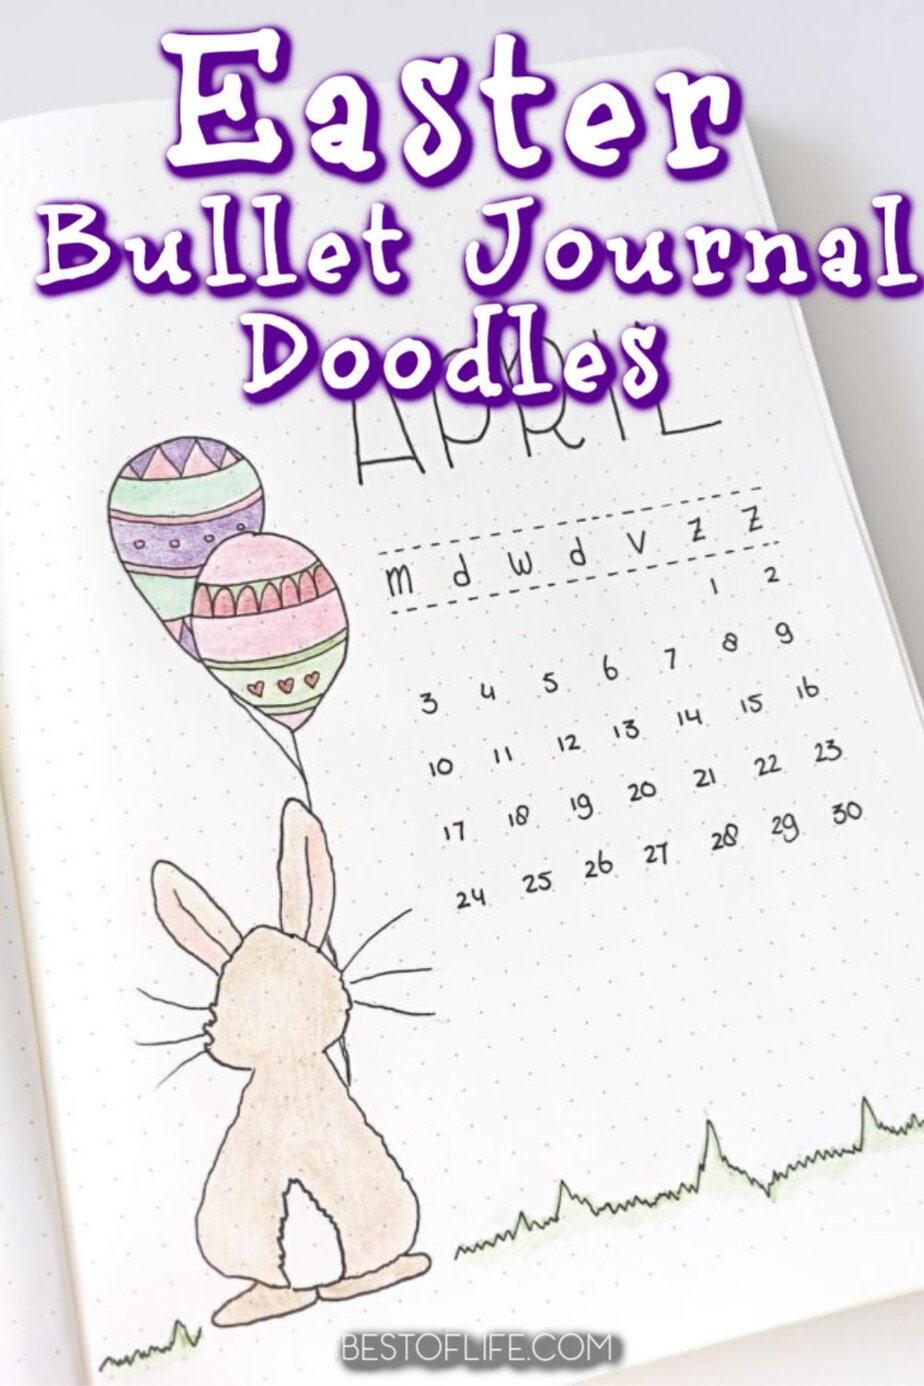 Bullet journal Easter doodles can help you get in the holiday spirit and are creative DIY ways to personalize your journal layouts. Easter Bullet Journal Cover | Easter Bullet Journal Themes | Bullet Journal Spread Ideas | Mood Tracker Bullet Journal | Bullet Journal Layouts | Organization for Easter | Spring Bullet Journals #easter #bujo via @thebestoflife